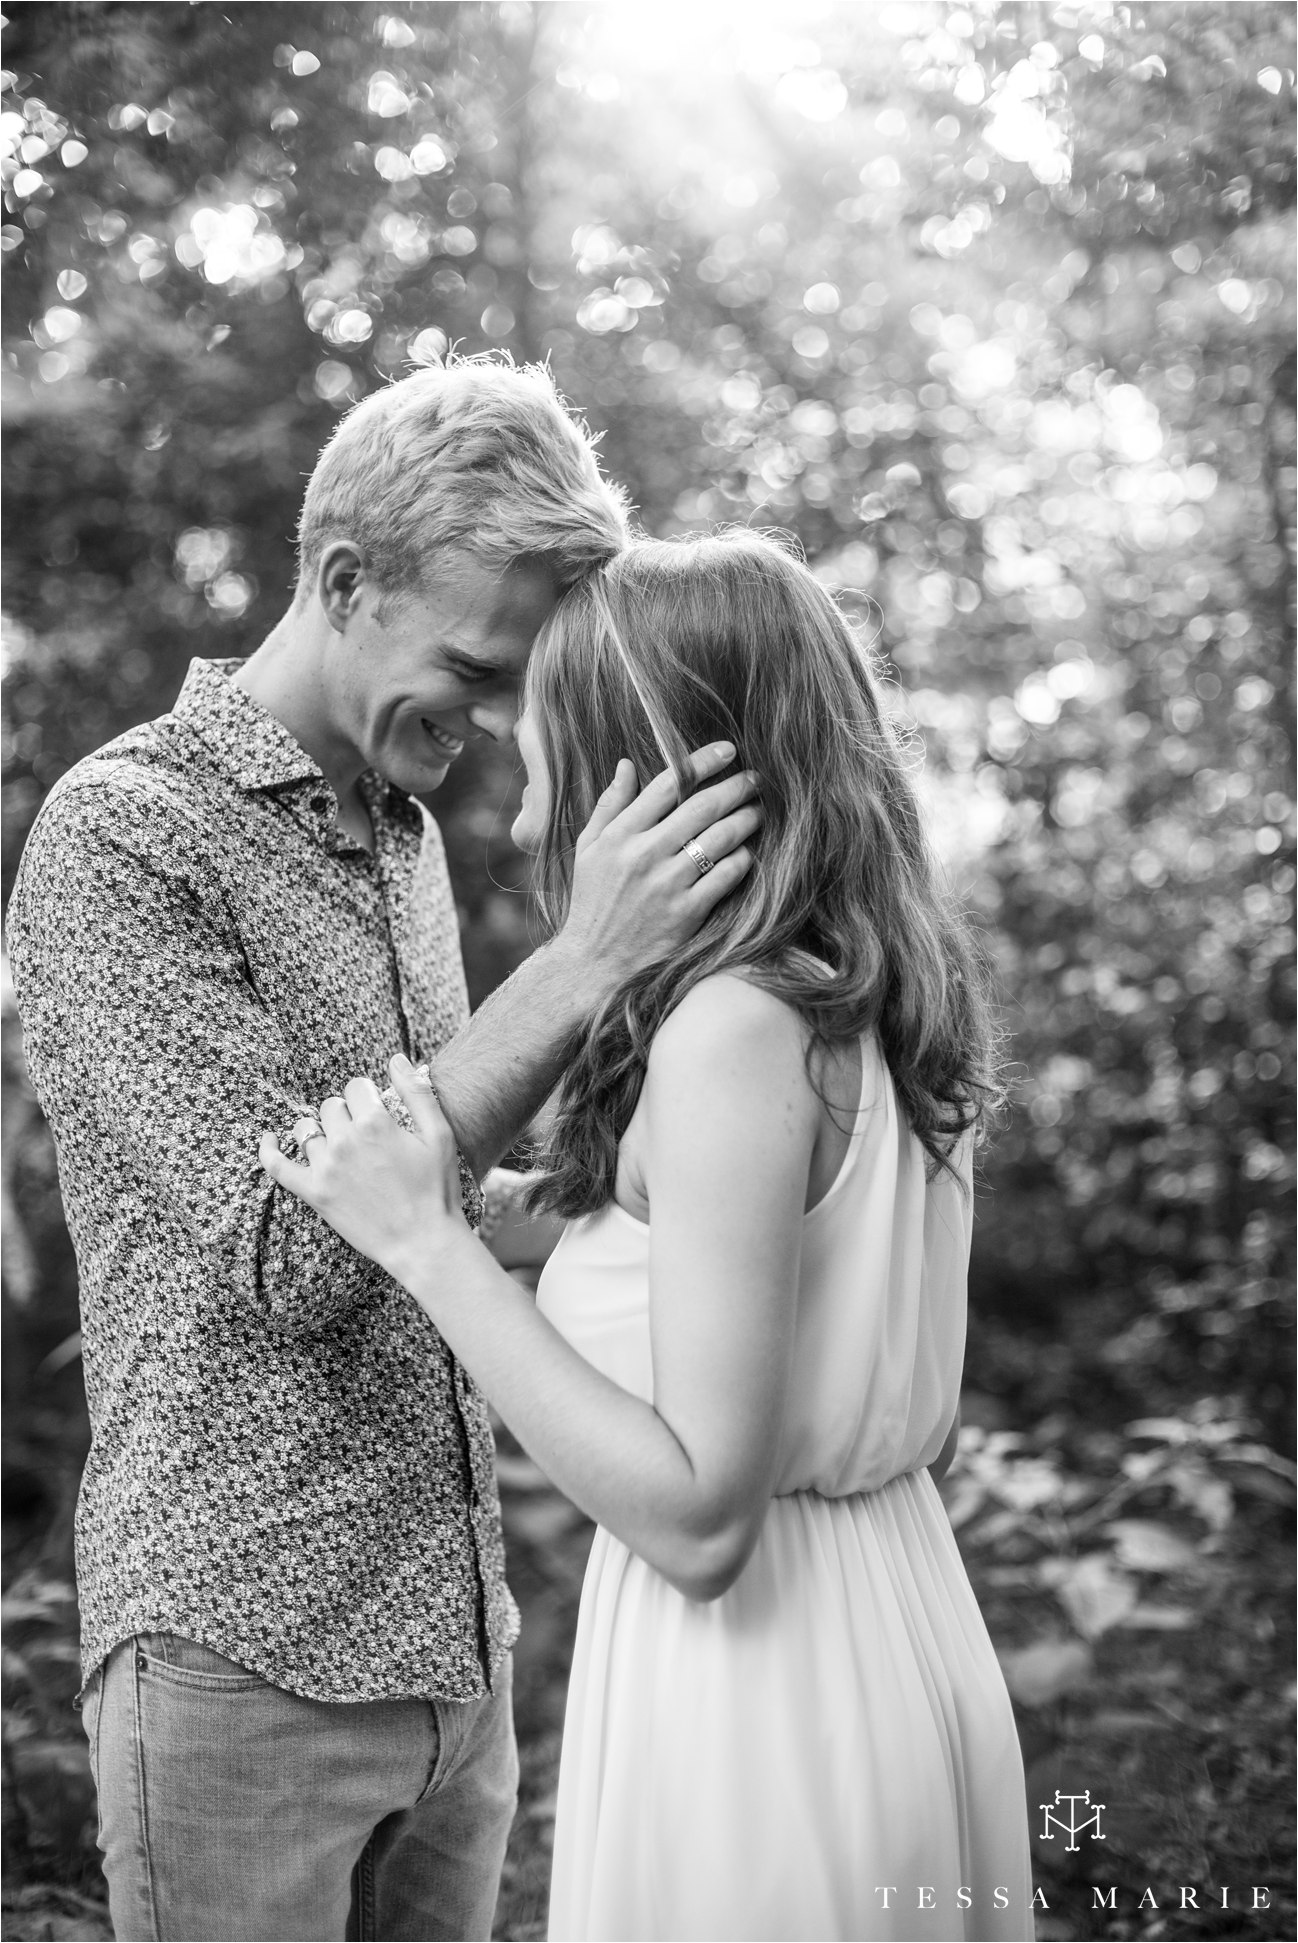 tessa_marie_studios_engagement_pictures_by_the_river_tessa_marie_weddings_0005